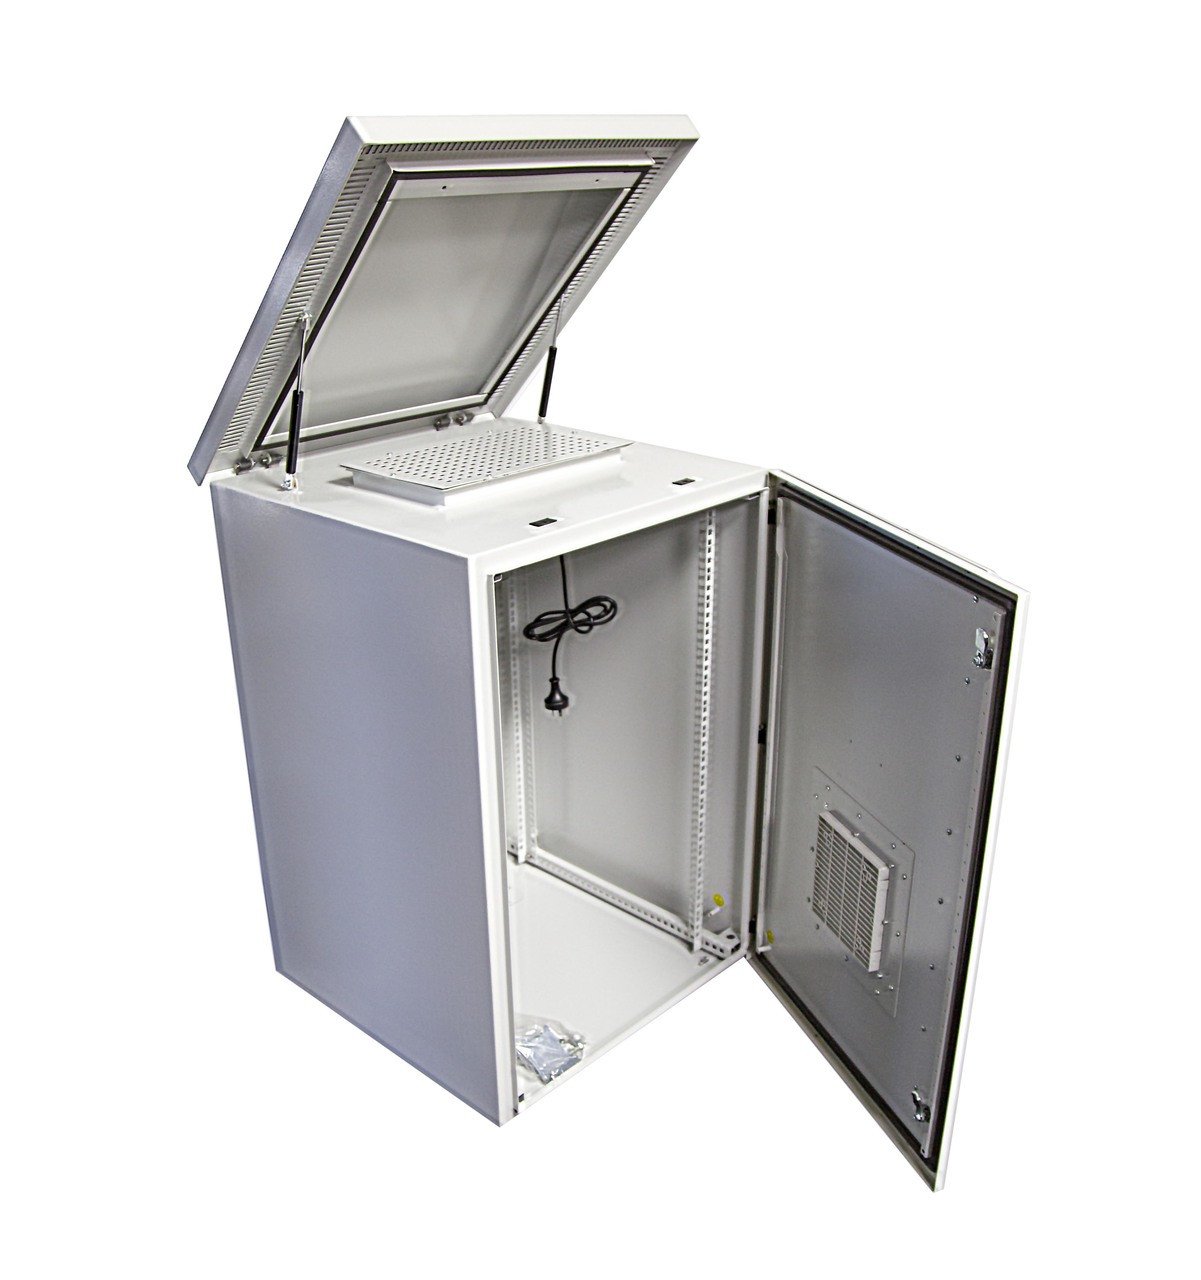 Outdoor Dust Proof Wall Mount Server Rack Cabinet Vented